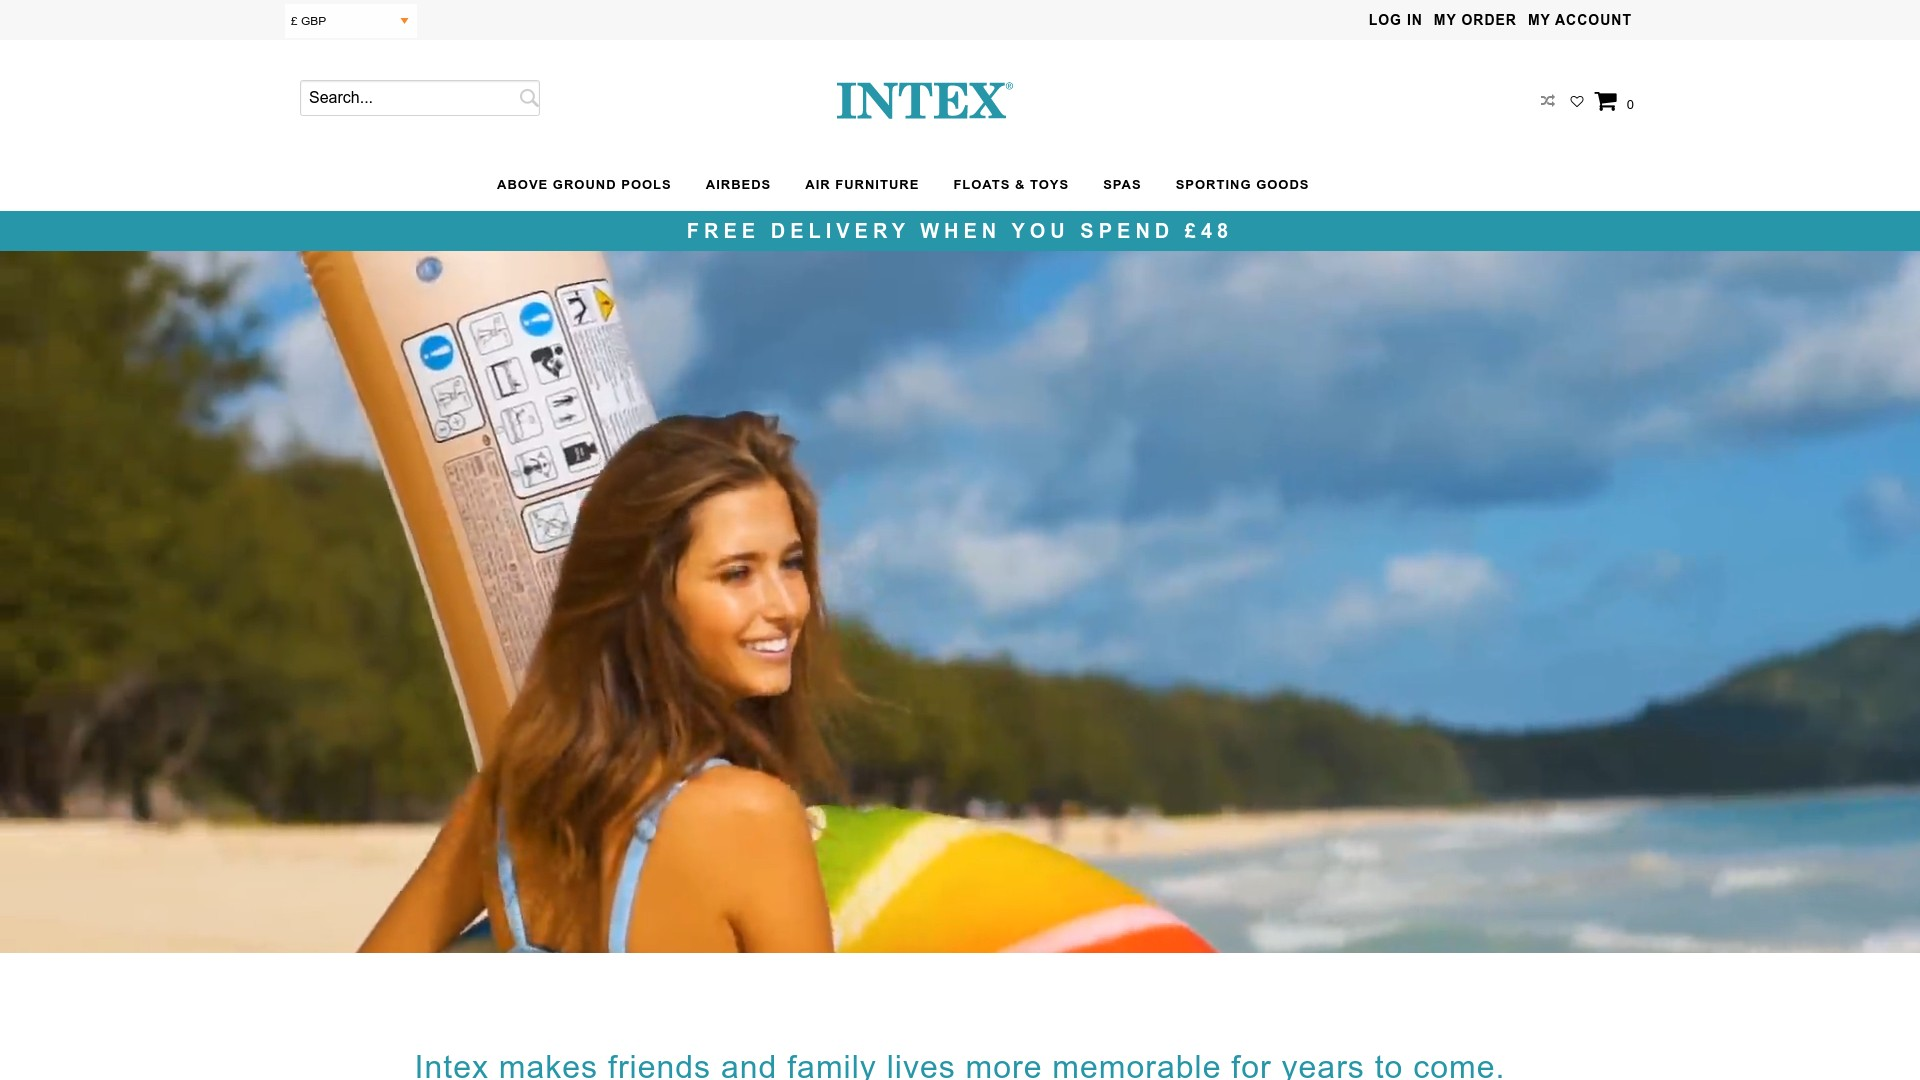 Is Intexshopvv a Scam? See the Review of the Online Store